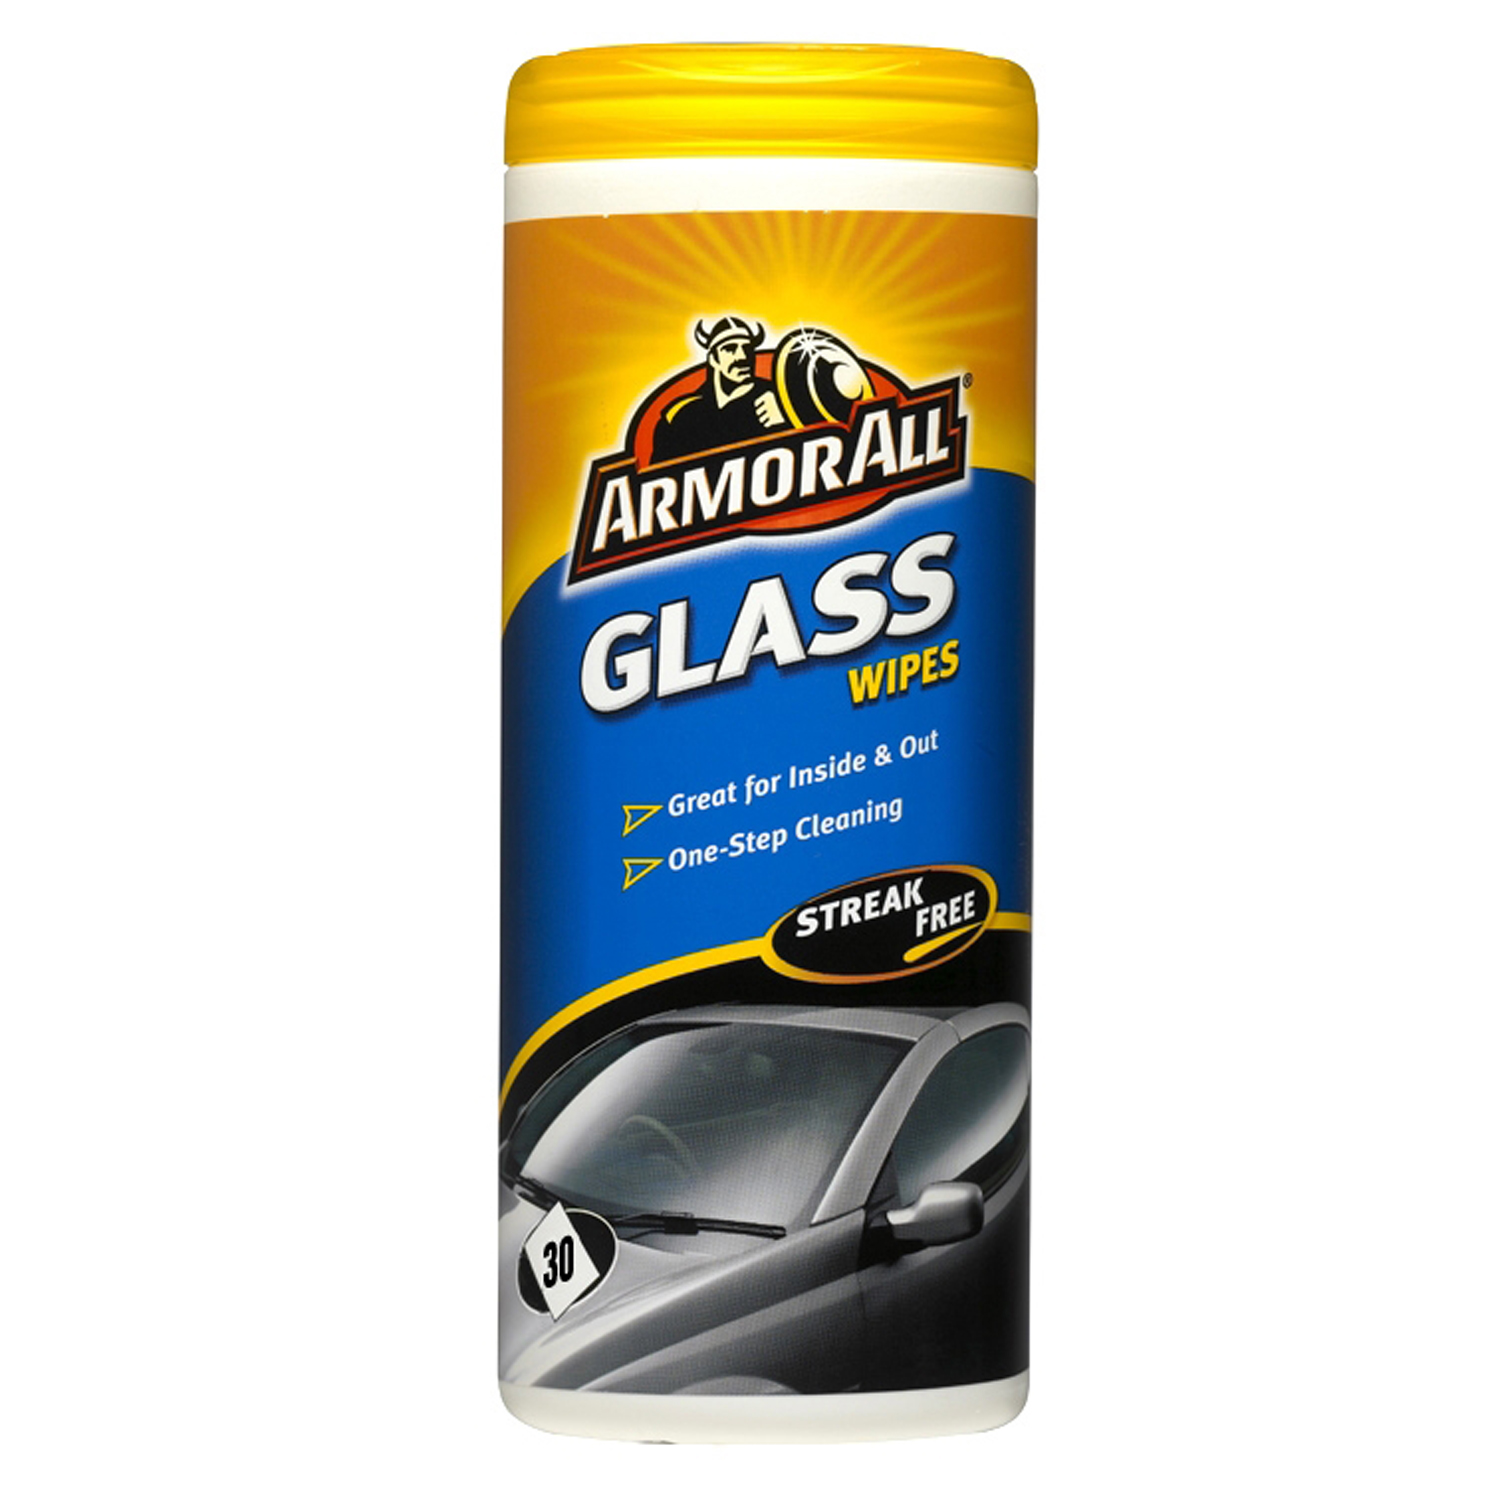 Image of Armoral 30 Glass Wipes